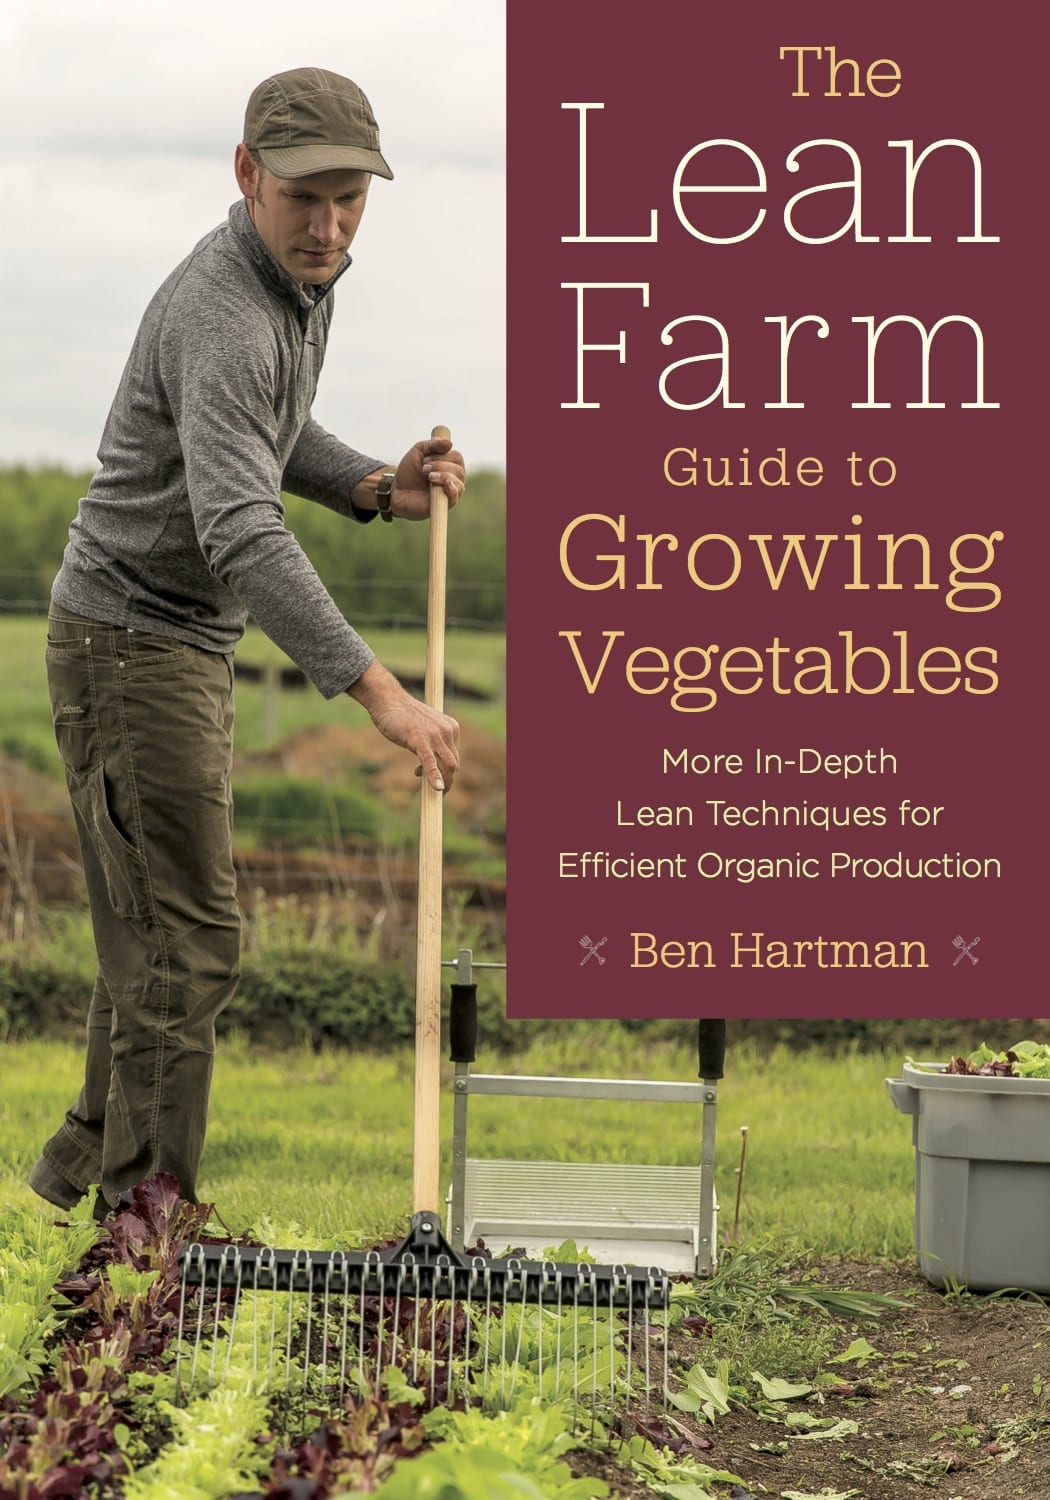 The Lean Farm book cover